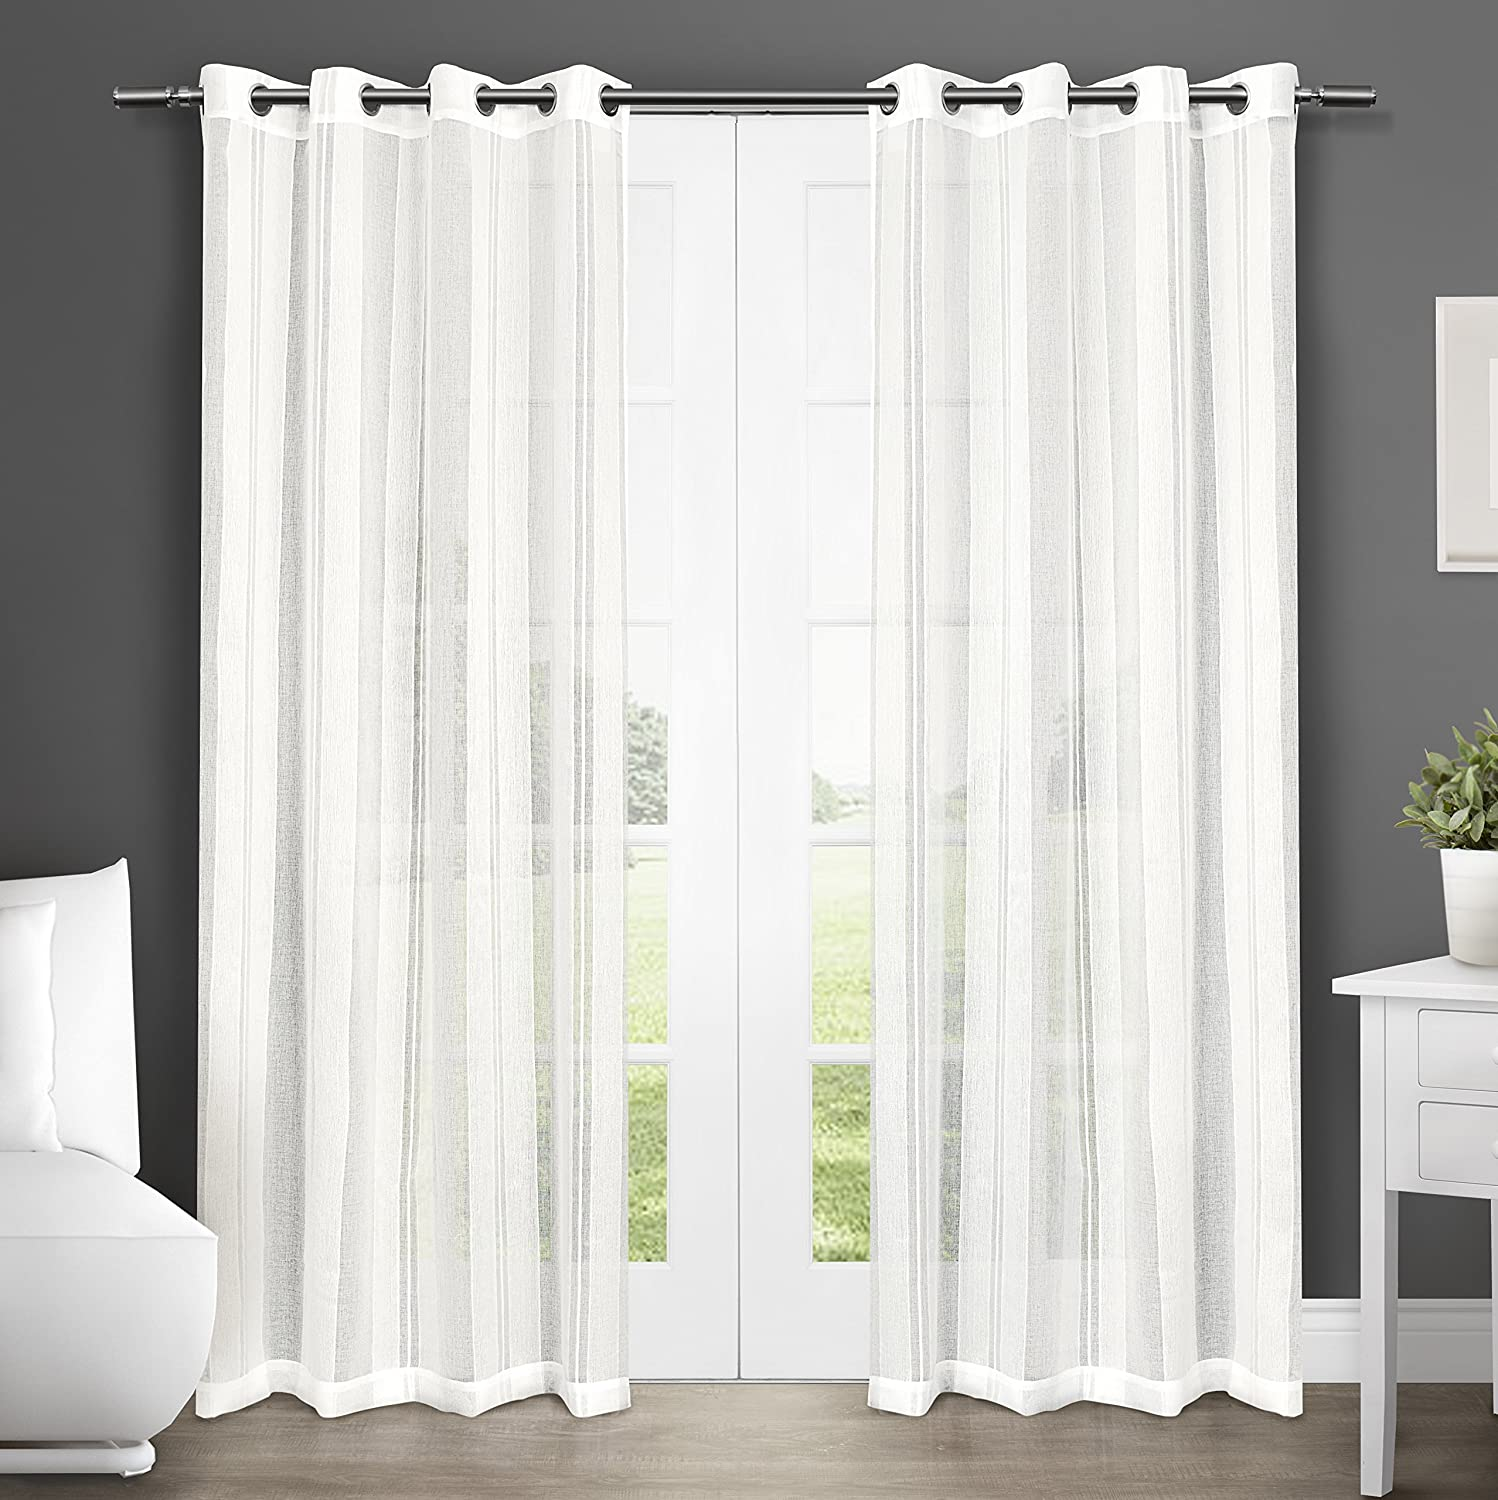 ikea jpg of pair curtain white majgull pe blackout from curtains and ideas linen grey fresh